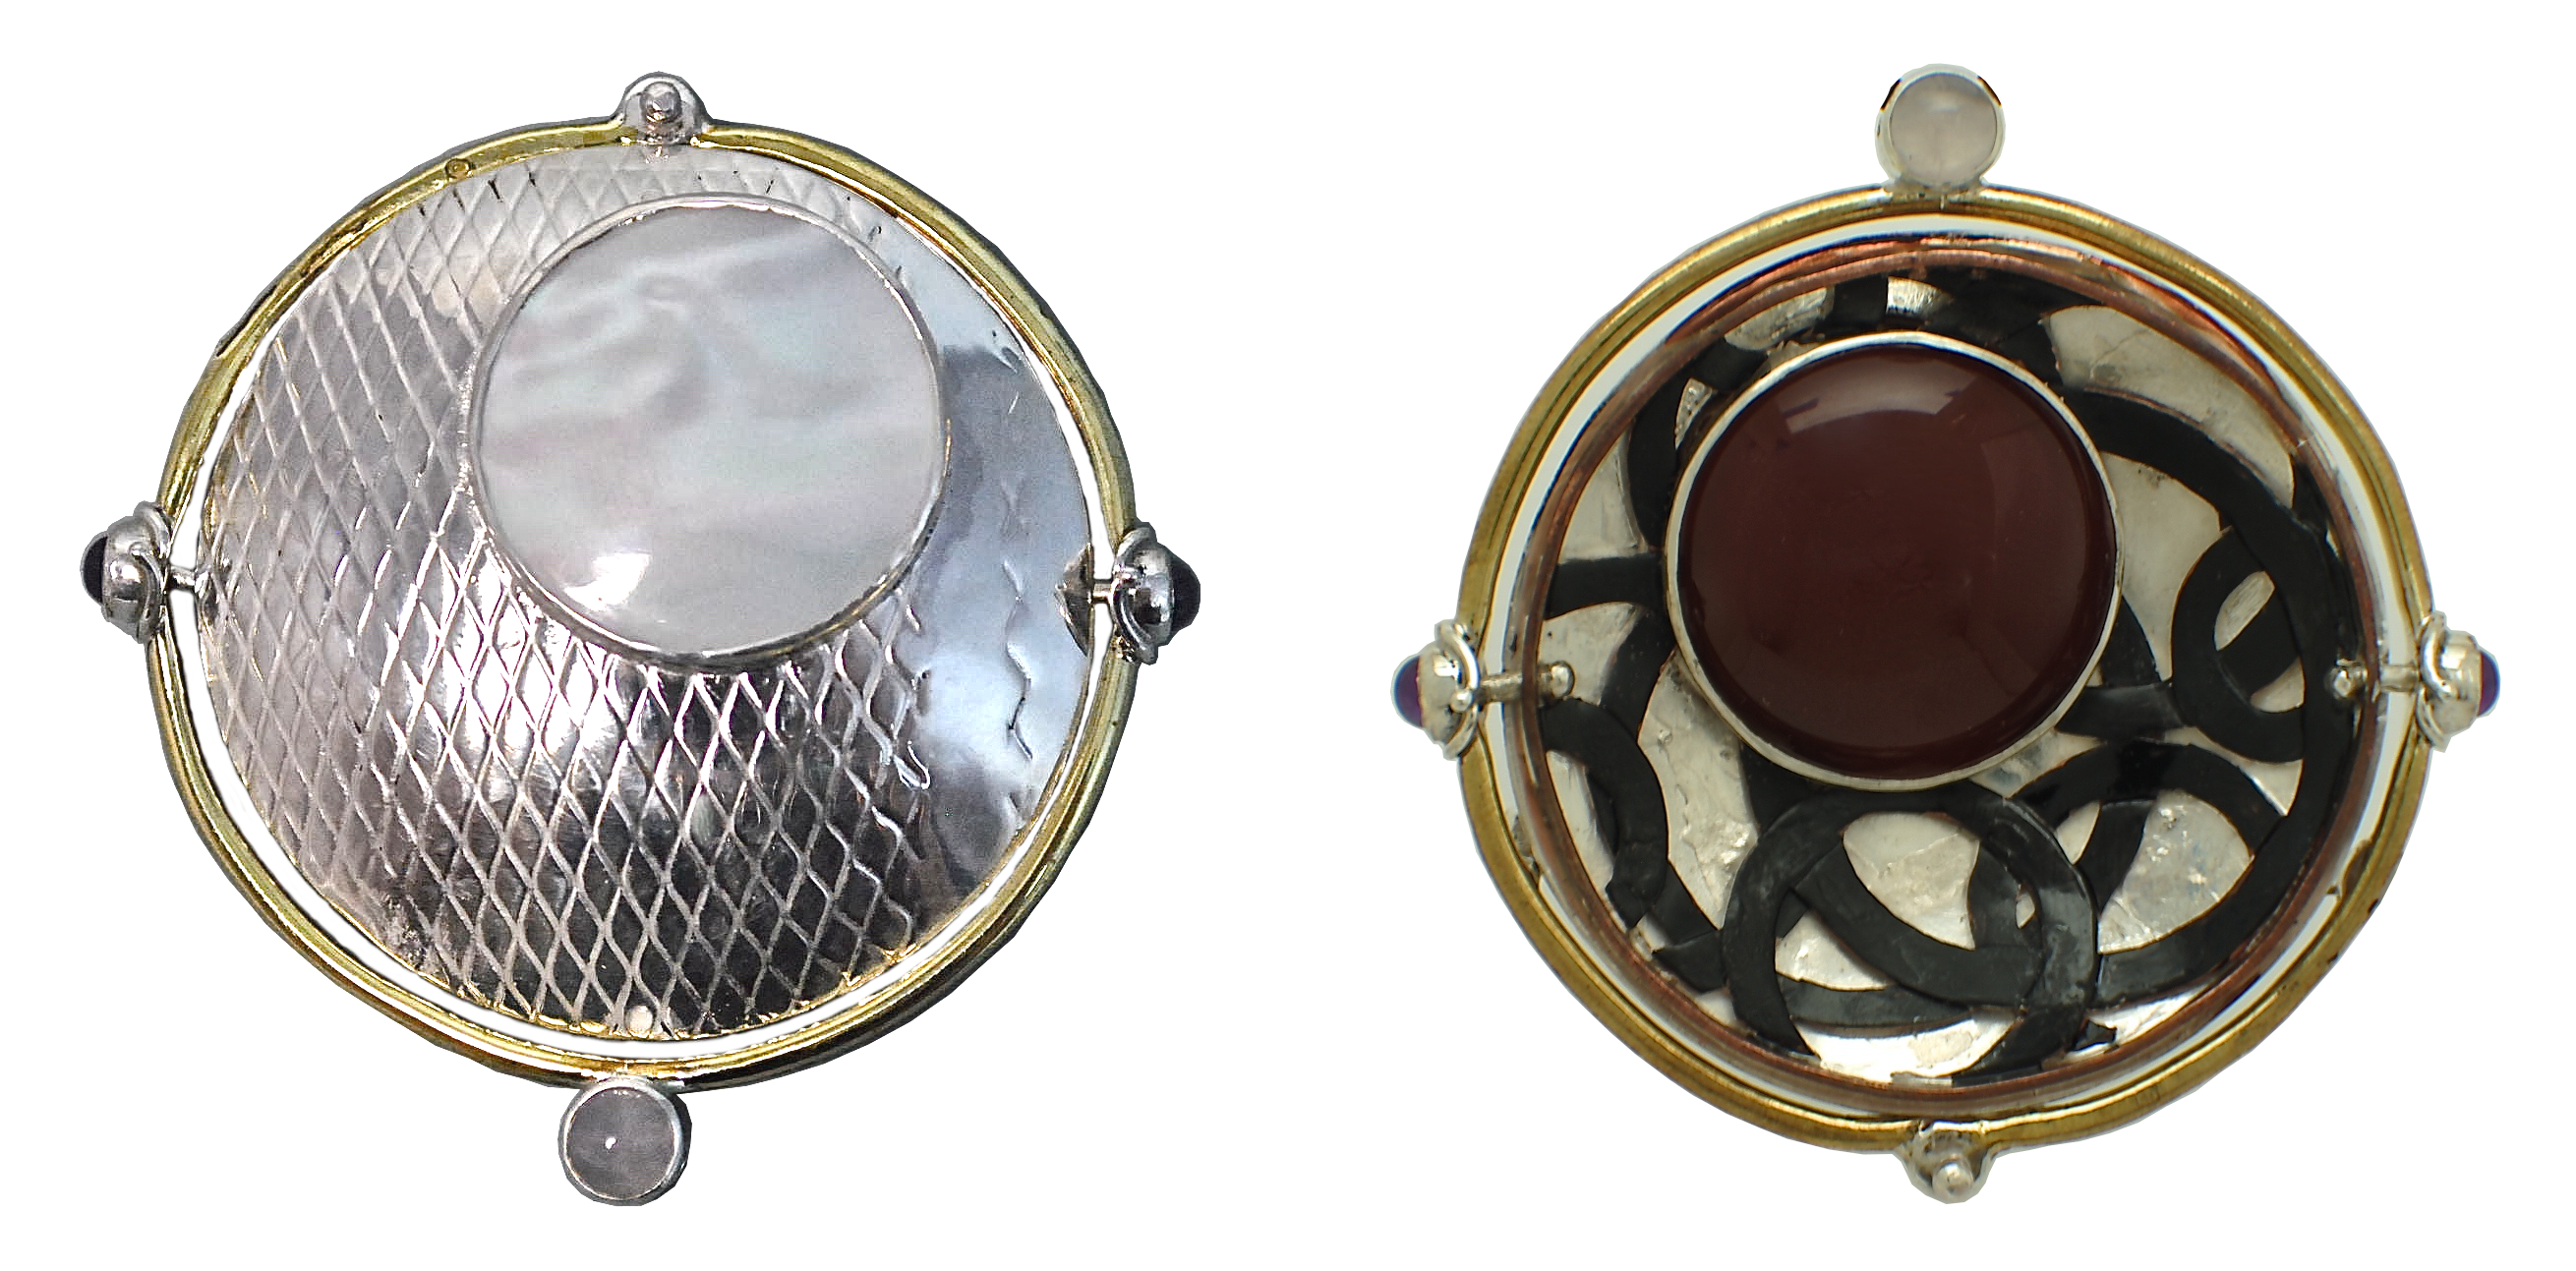 Sterling silver, brass, and copper two-sided pin/pendant set with rose quartz and amethyst on hinge and mother of pearl on one side and carnelian on opposite side. 2017.